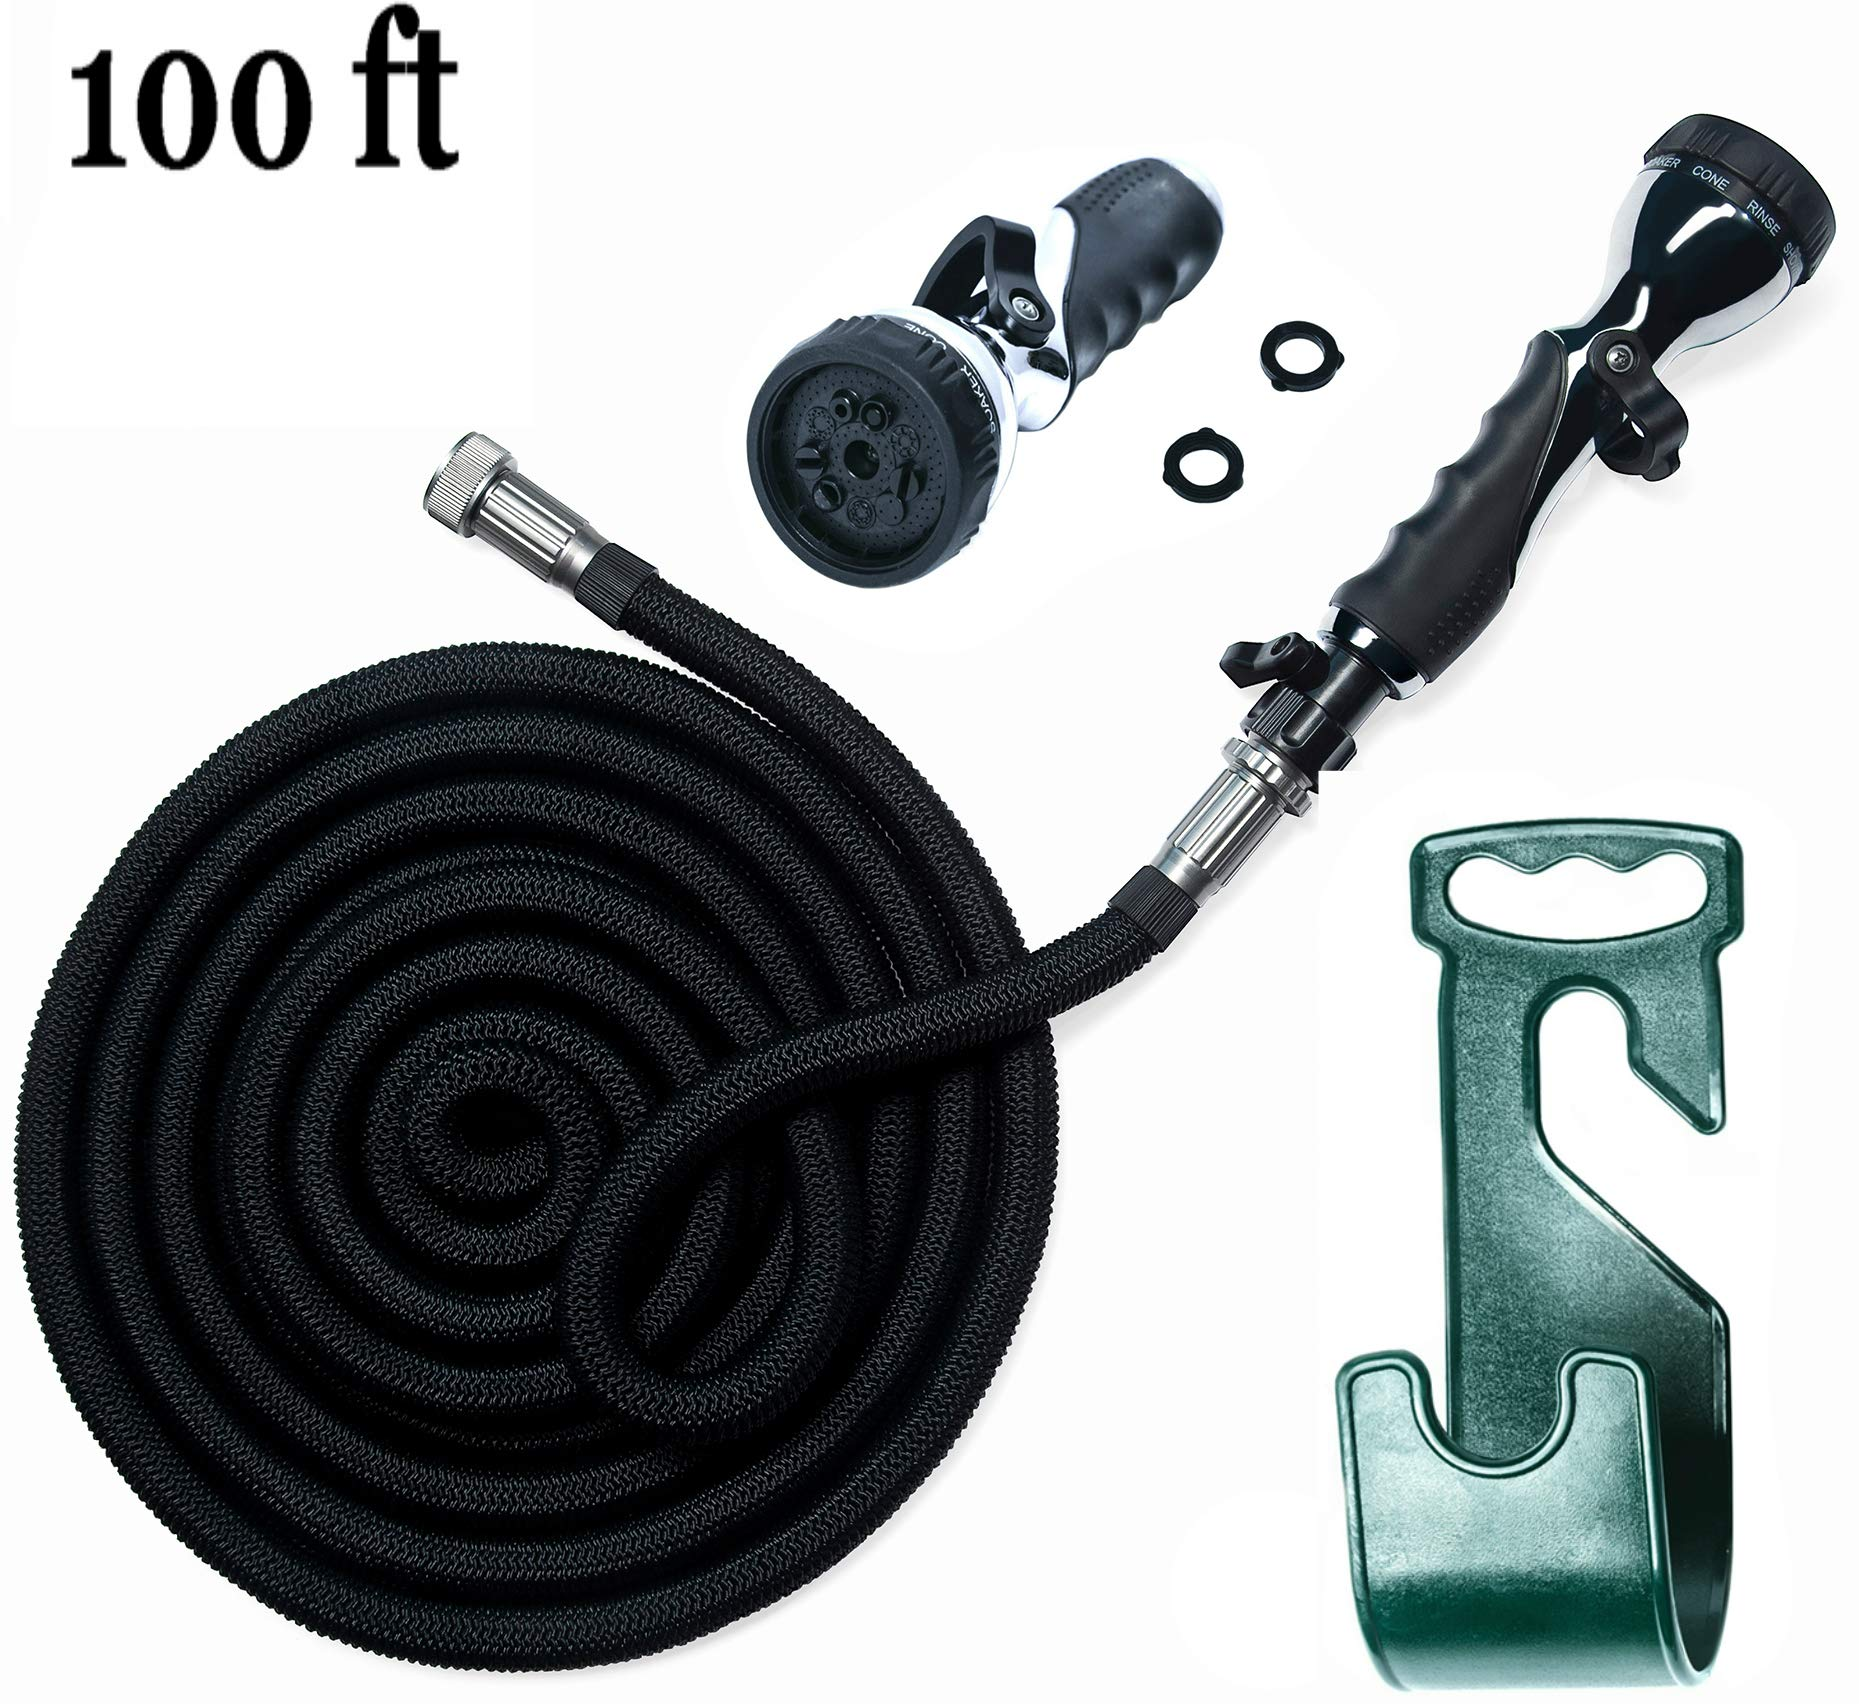 Water Hose – 100 Ft Expandable Garden Hose - Hose Holder & High Pressure Washer Spray Nozzle With 9 Settings – Best As Seen on TV Heavy Duty Kink Free Flex Hose for Car Washing & Watering Hose